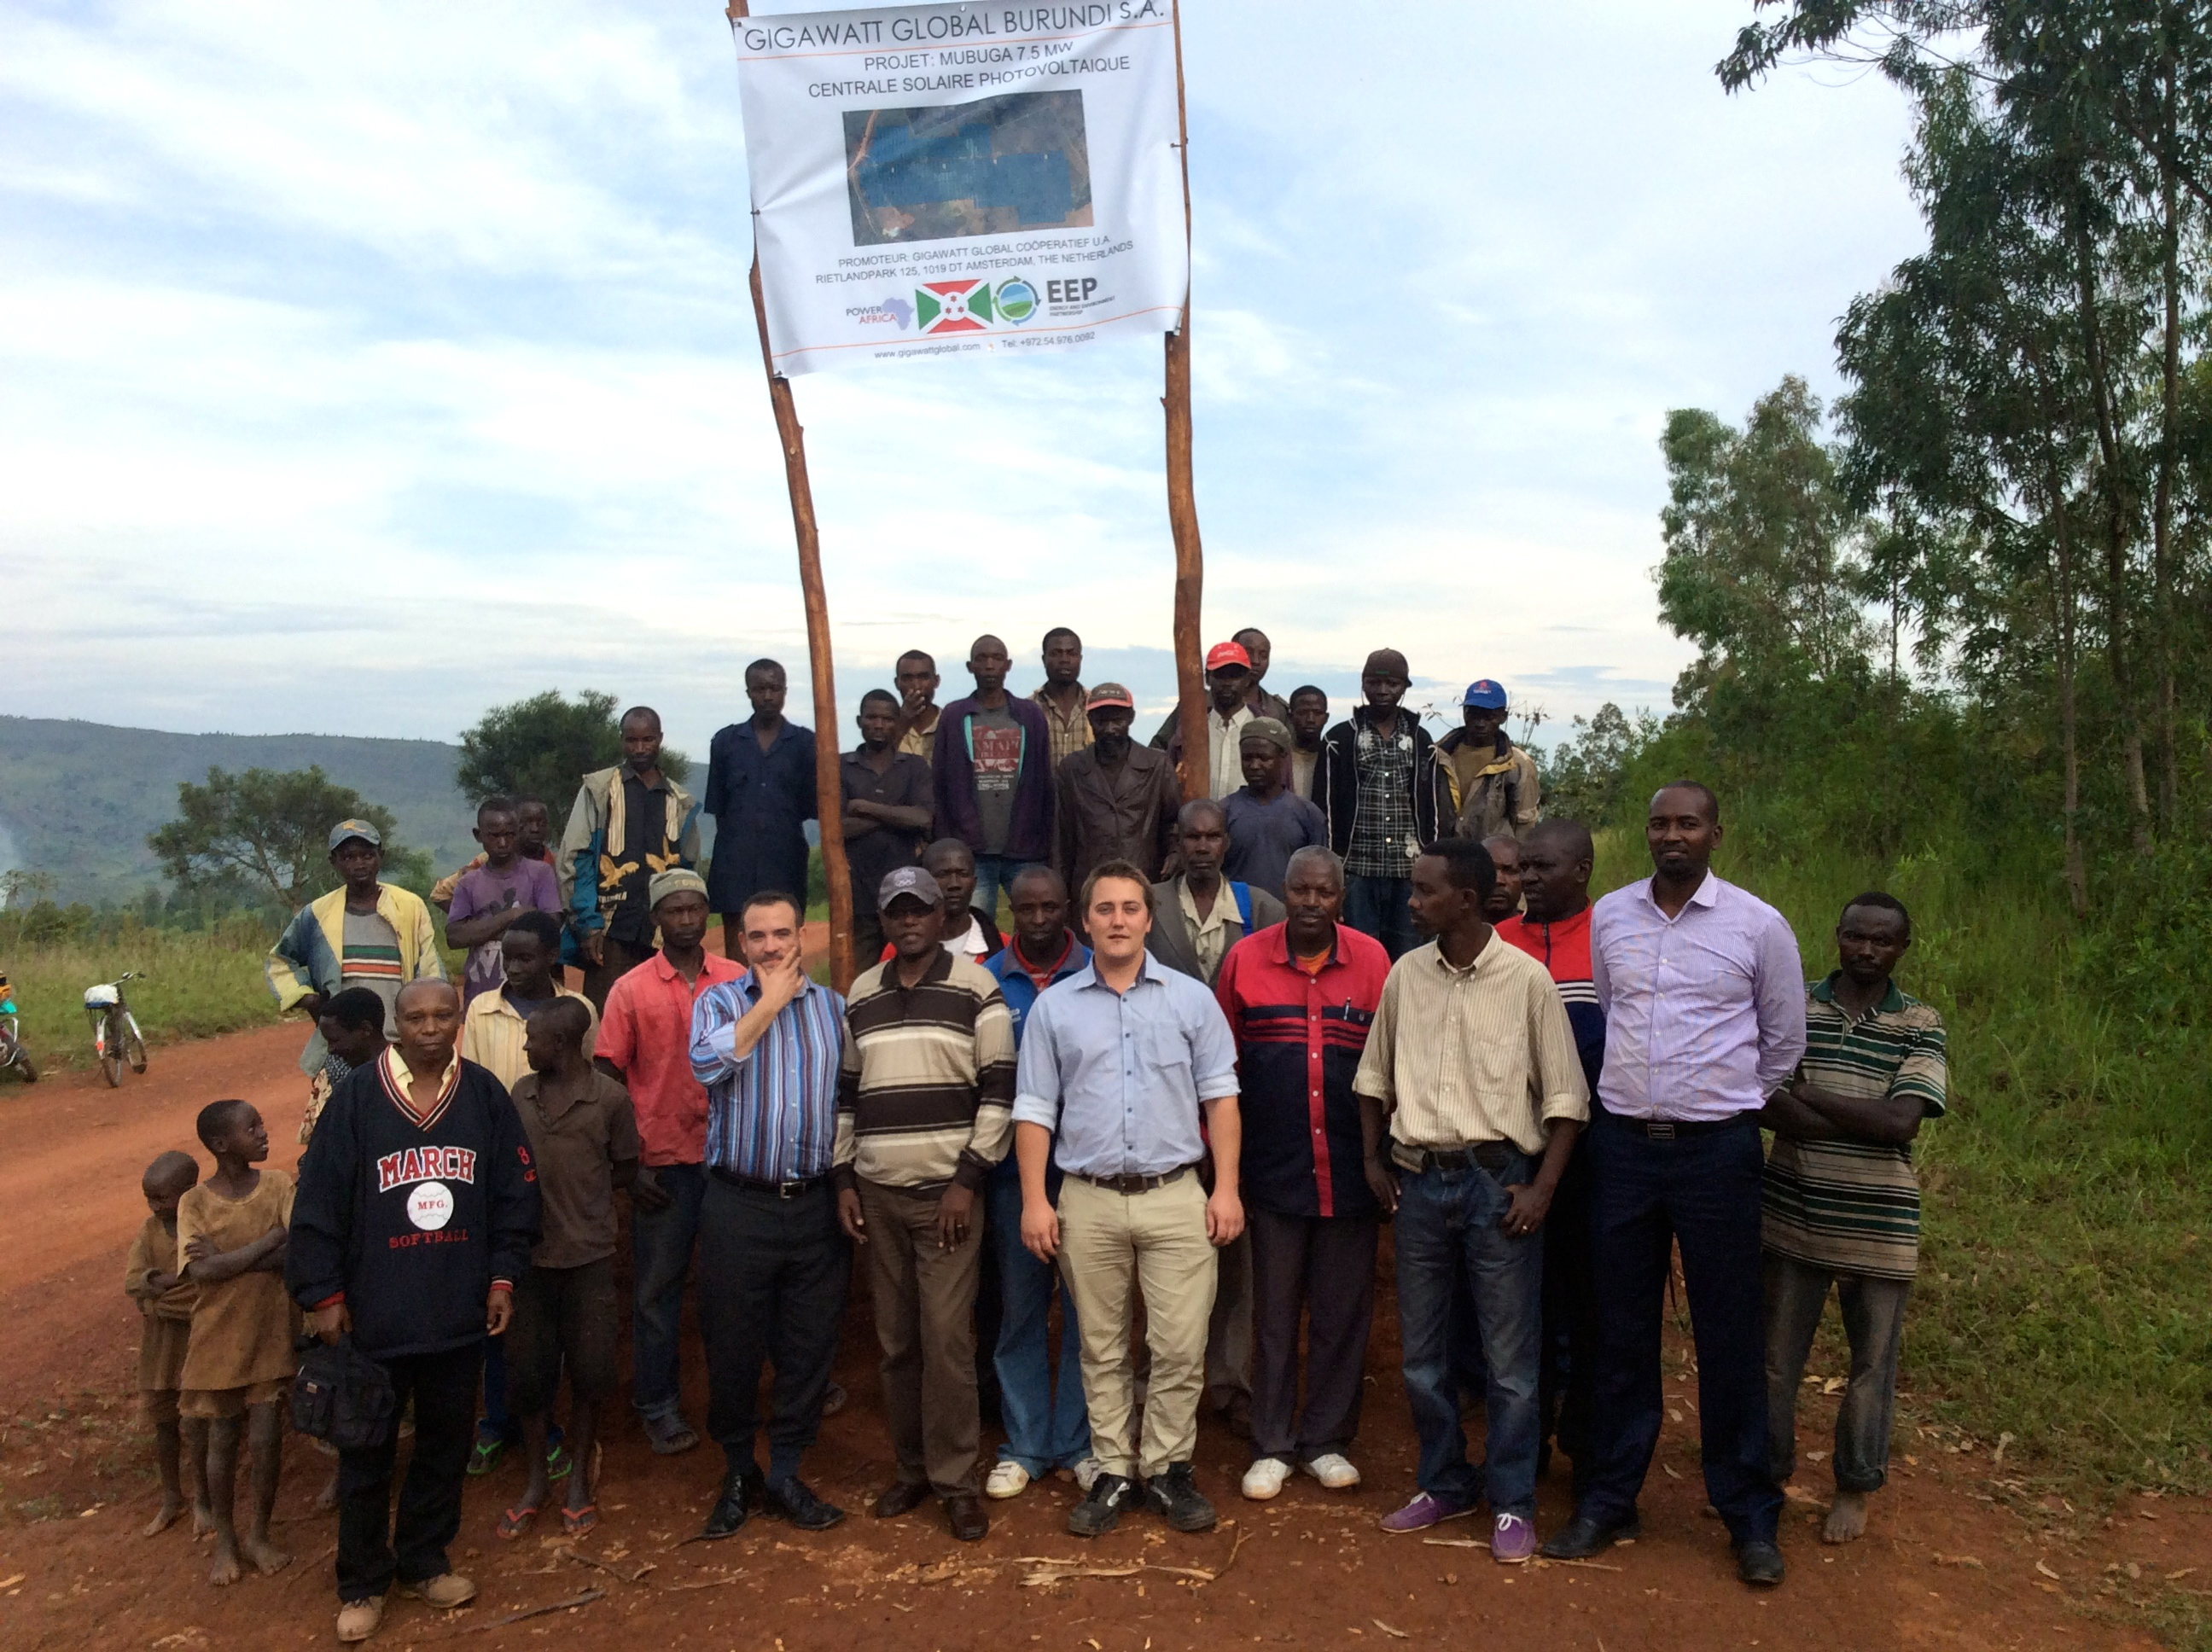 GigaWatt Global Solar project in Burundi